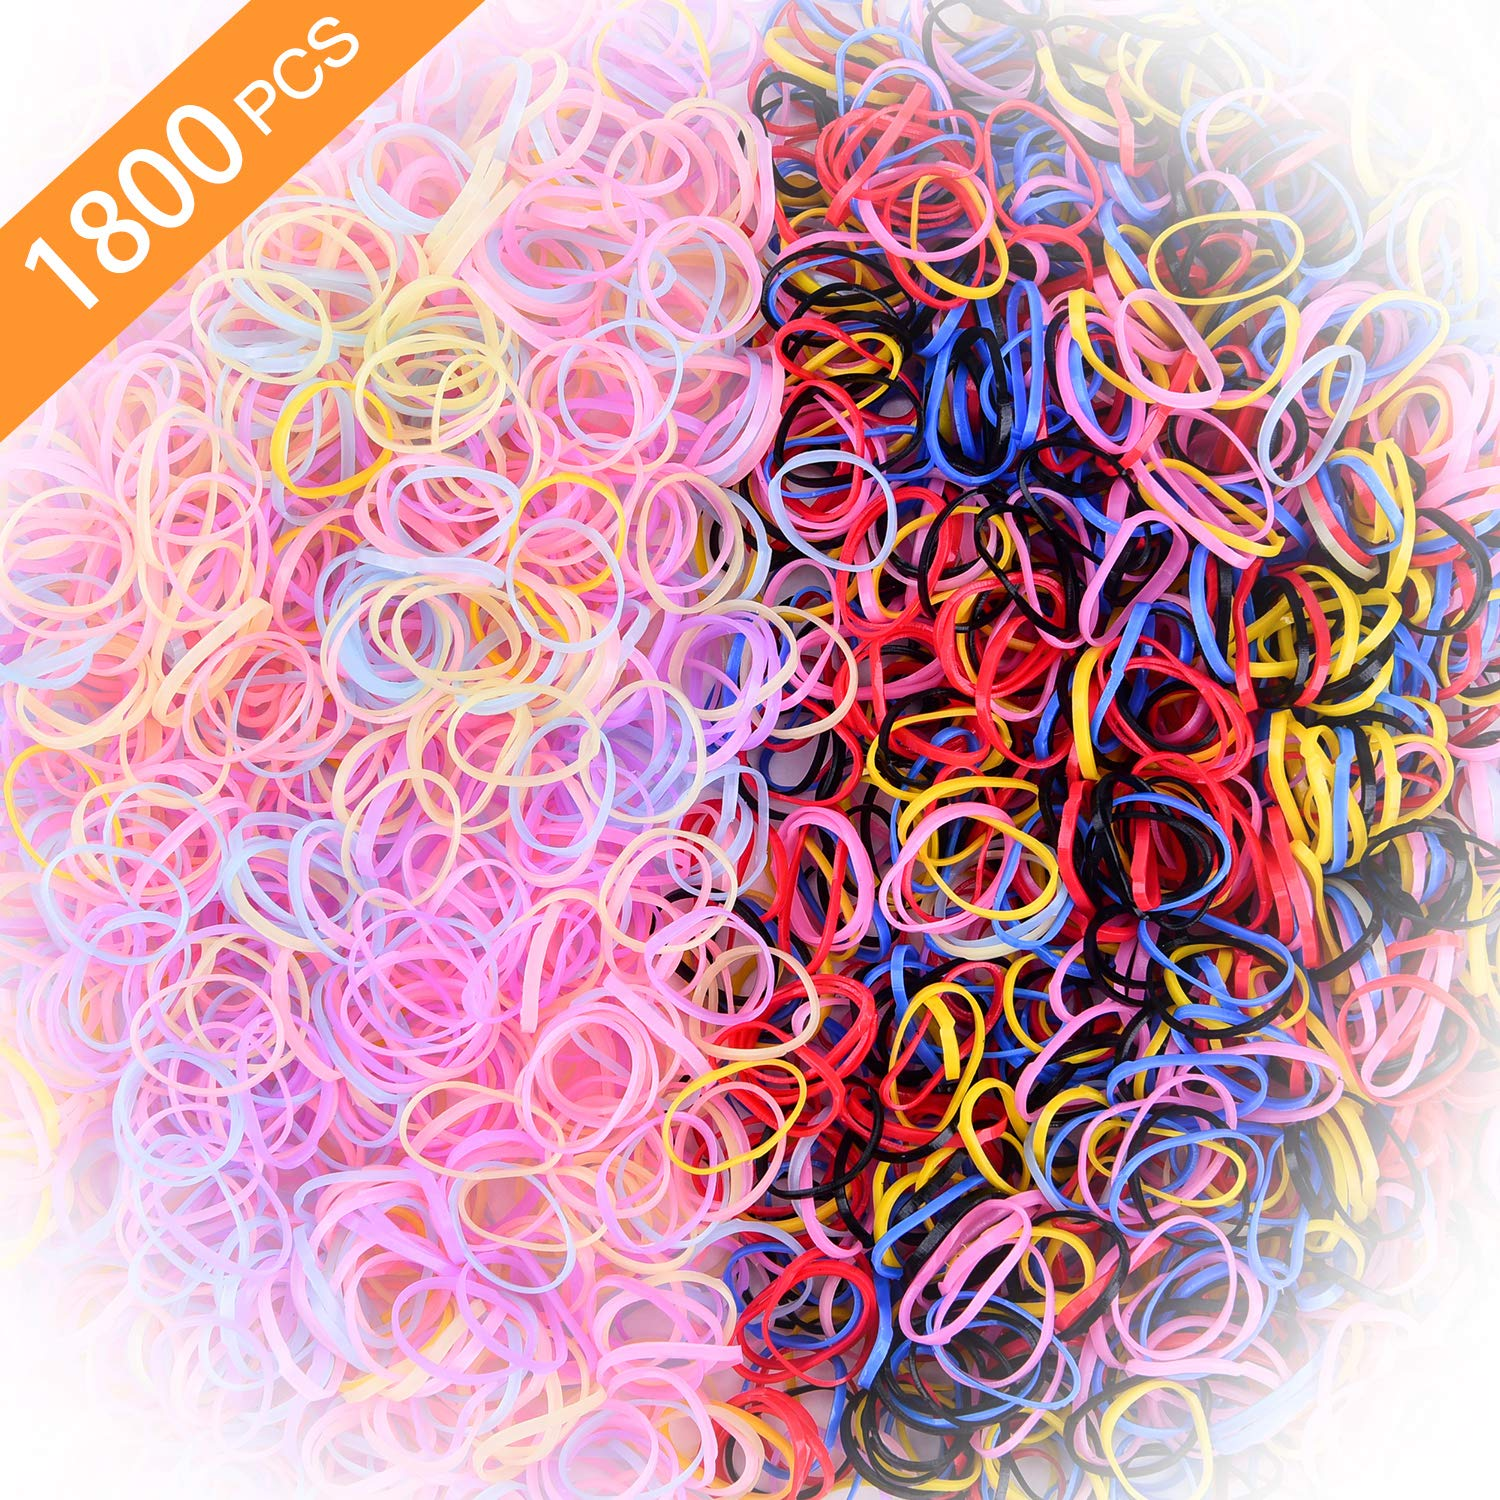 Toddlers Hair Ties for Kids Girls Baby Elastic Mini Hair Bands 1800pcs No Damage Hair Rubber Bands Multi Candy&Deep Color Hair Holder (Jelly colors + Deep colors)